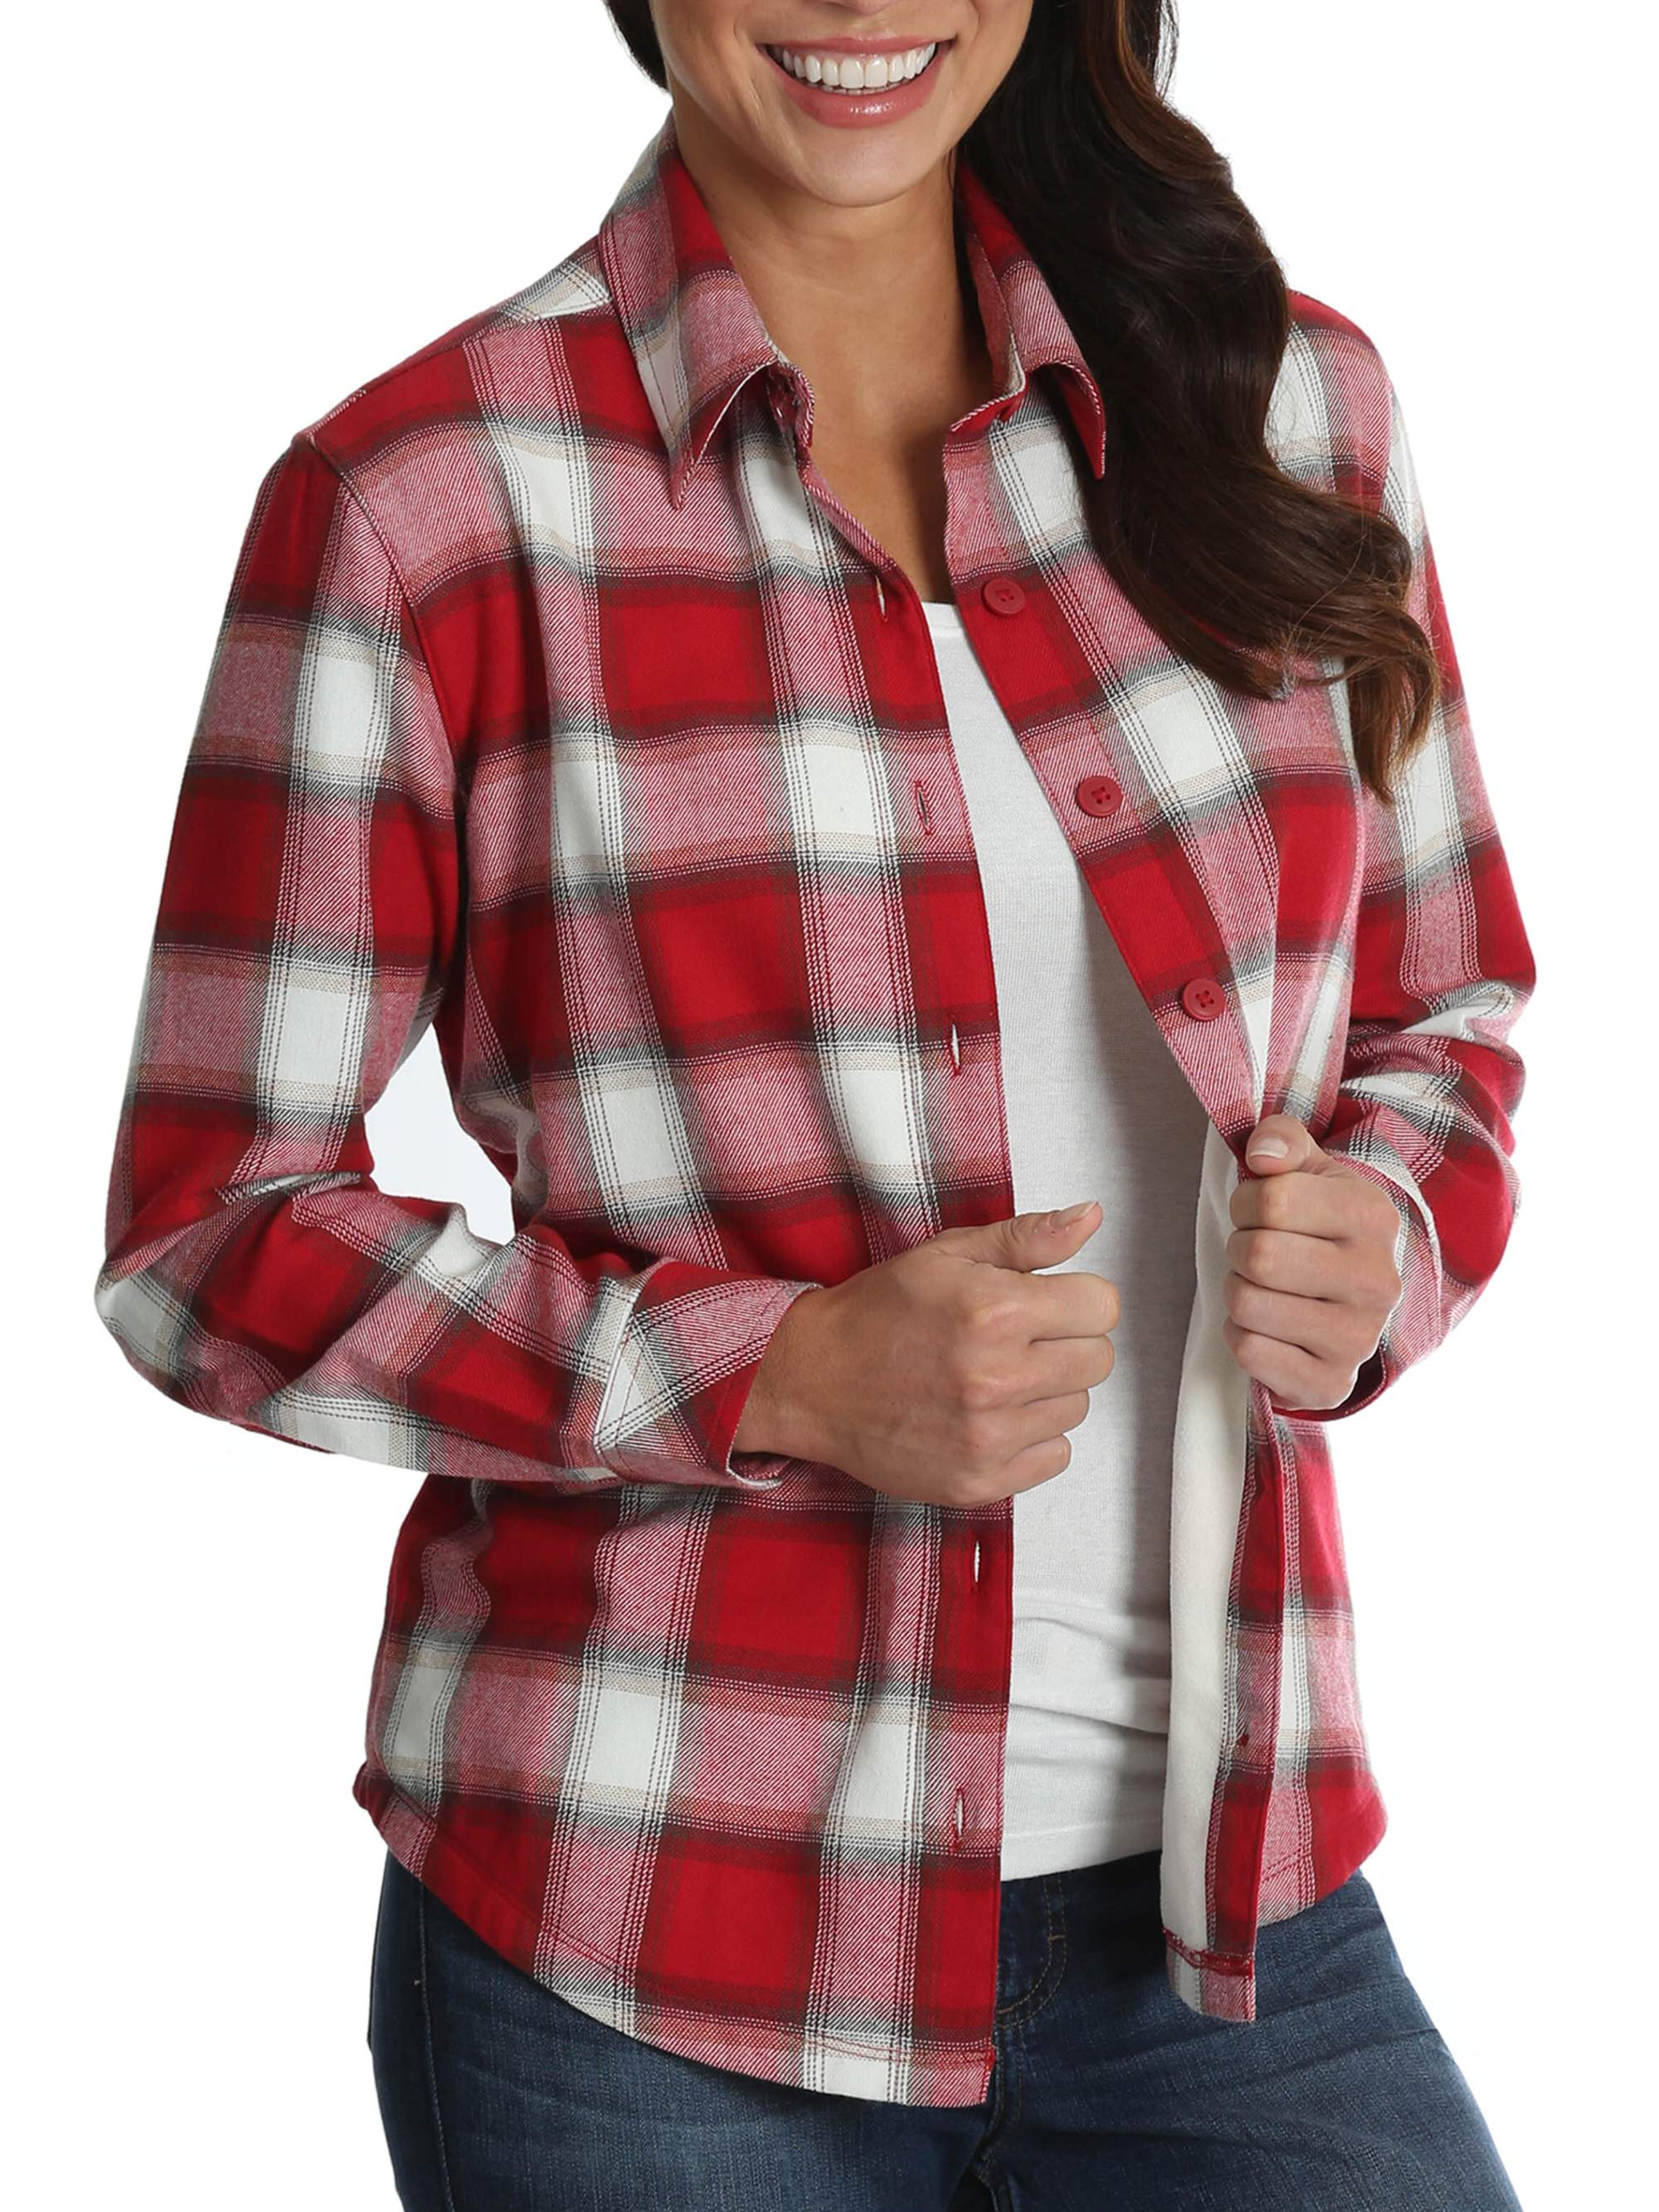 NEW WOMAN/'S LADIES GIRLS 100/% COTTON RED CHECK SHIRT 3//4 SLEEVES WITH HITCH UP